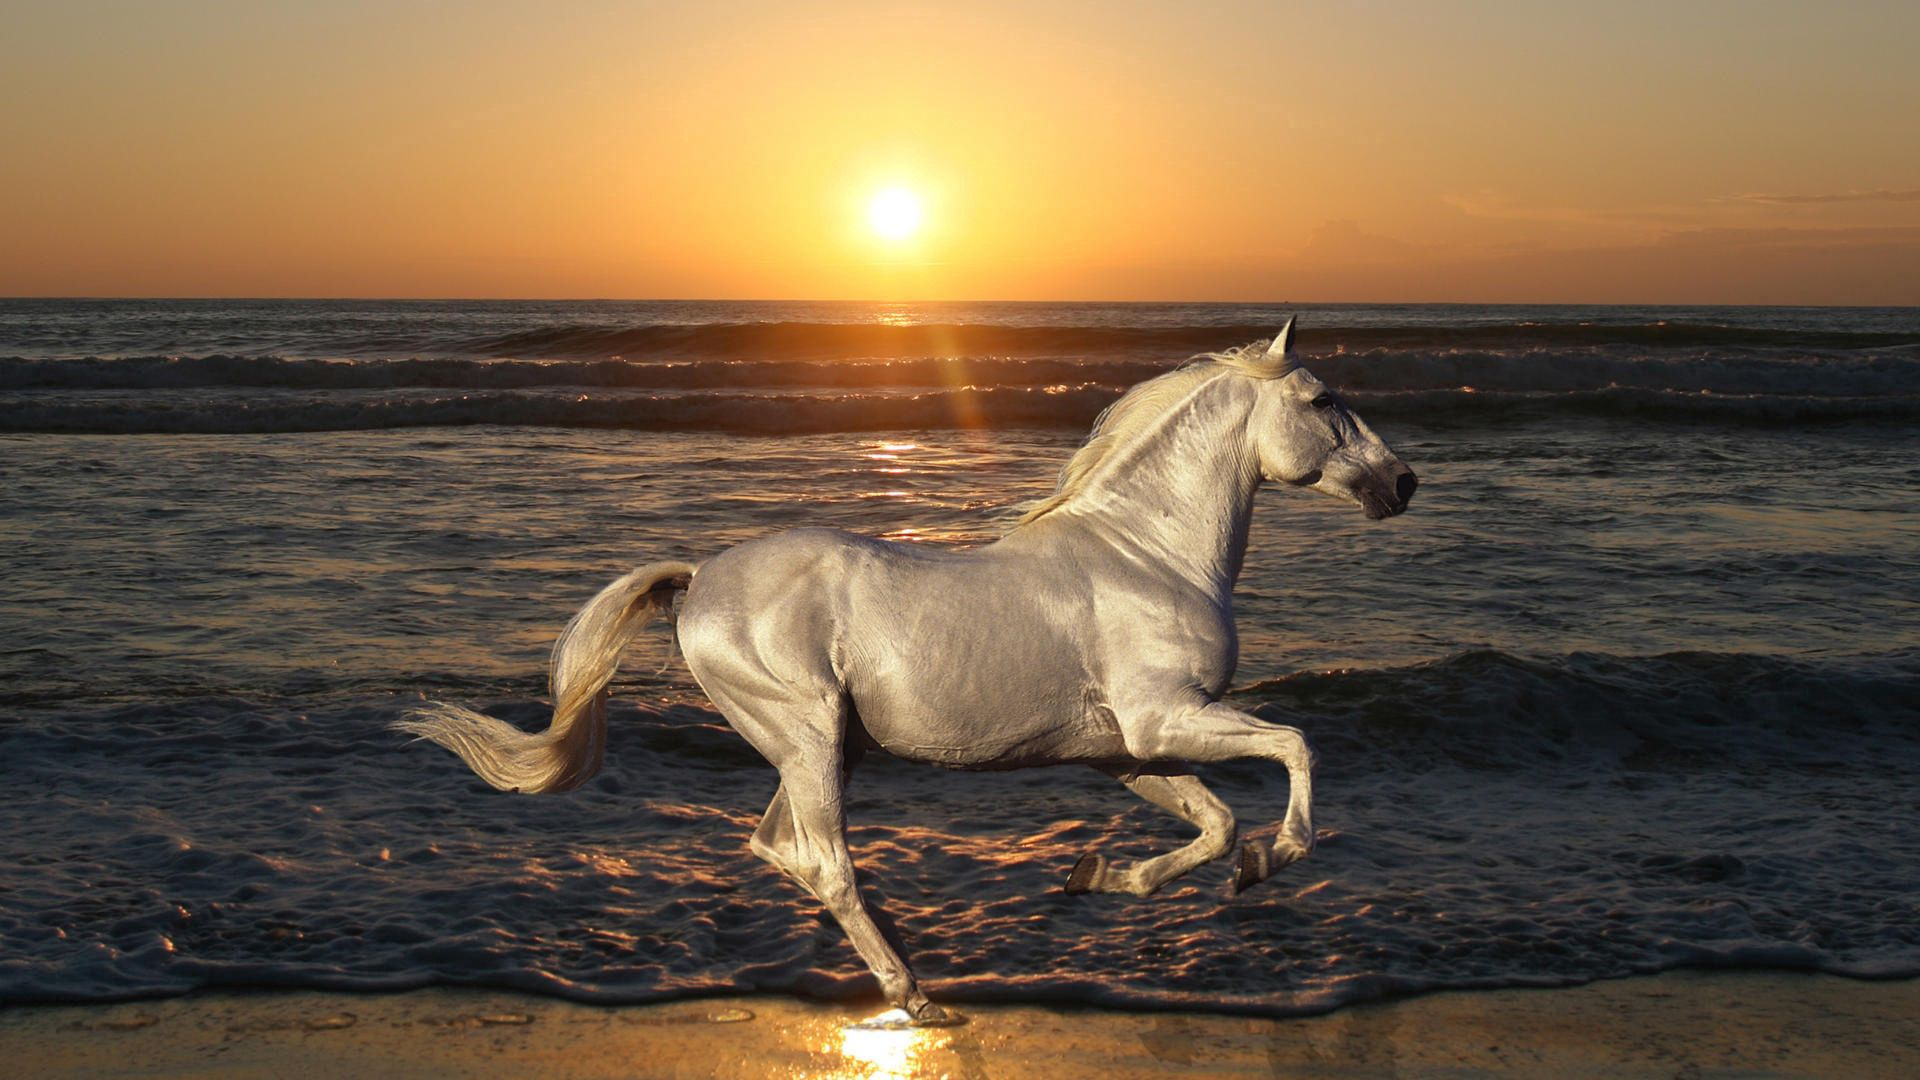 103347 download wallpaper Animals, Nature, Stallion, Horse, Rides, Jumps, Sea screensavers and pictures for free